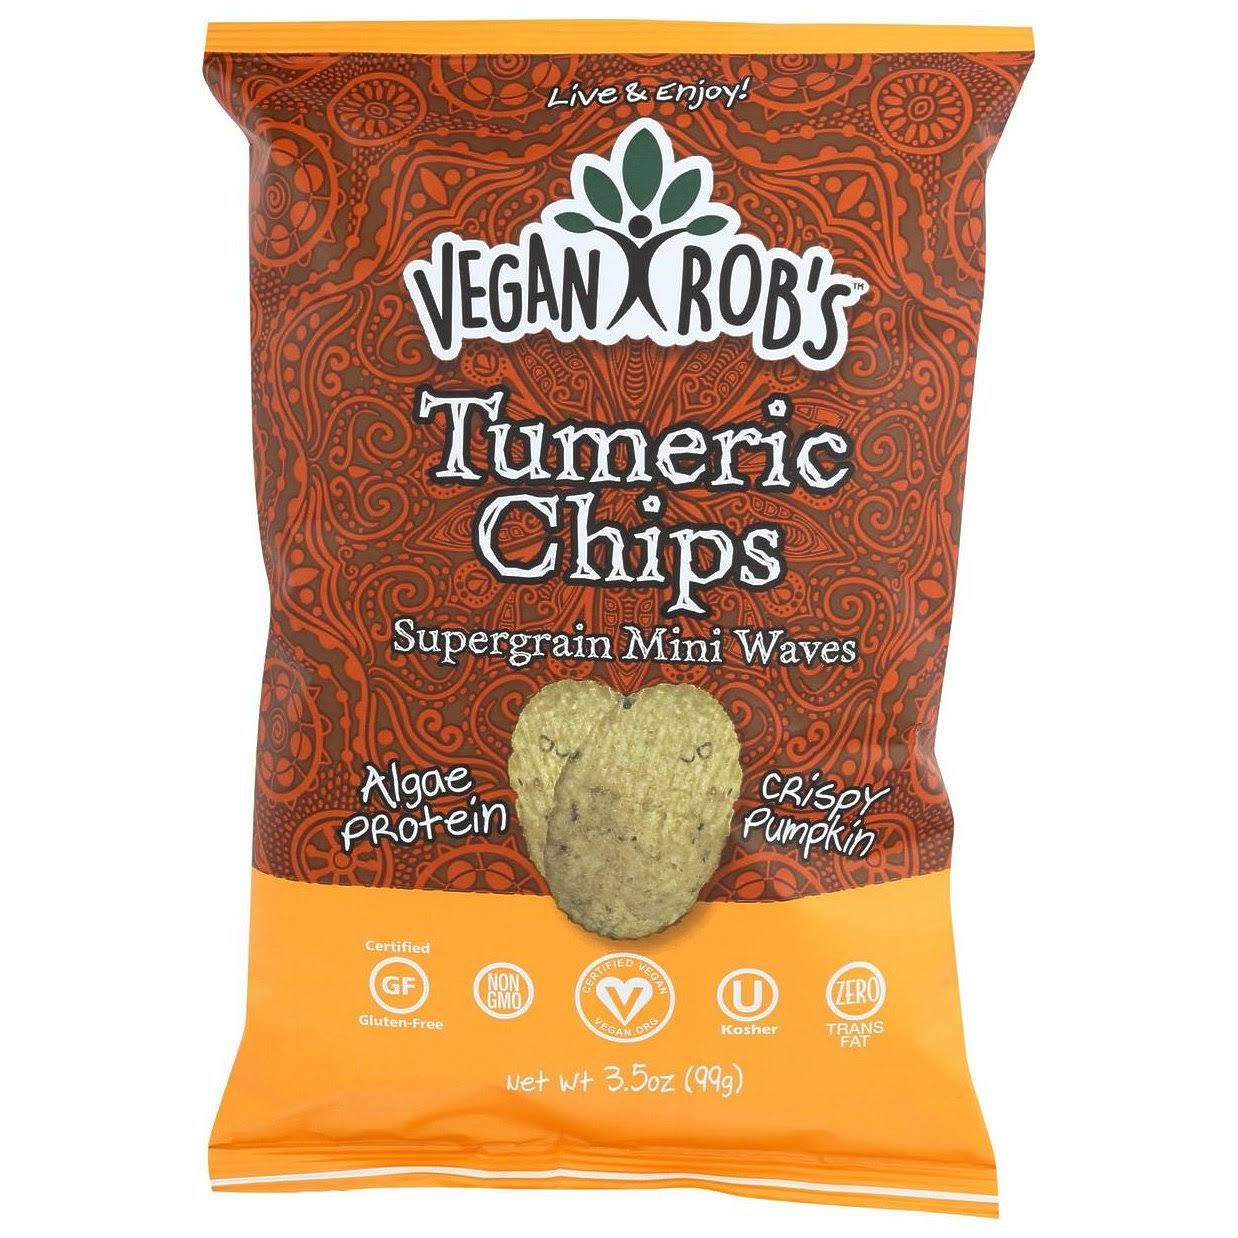 Vegan Robs Tumeric Chips, Supergrain, Mini Waves - 3.5 oz